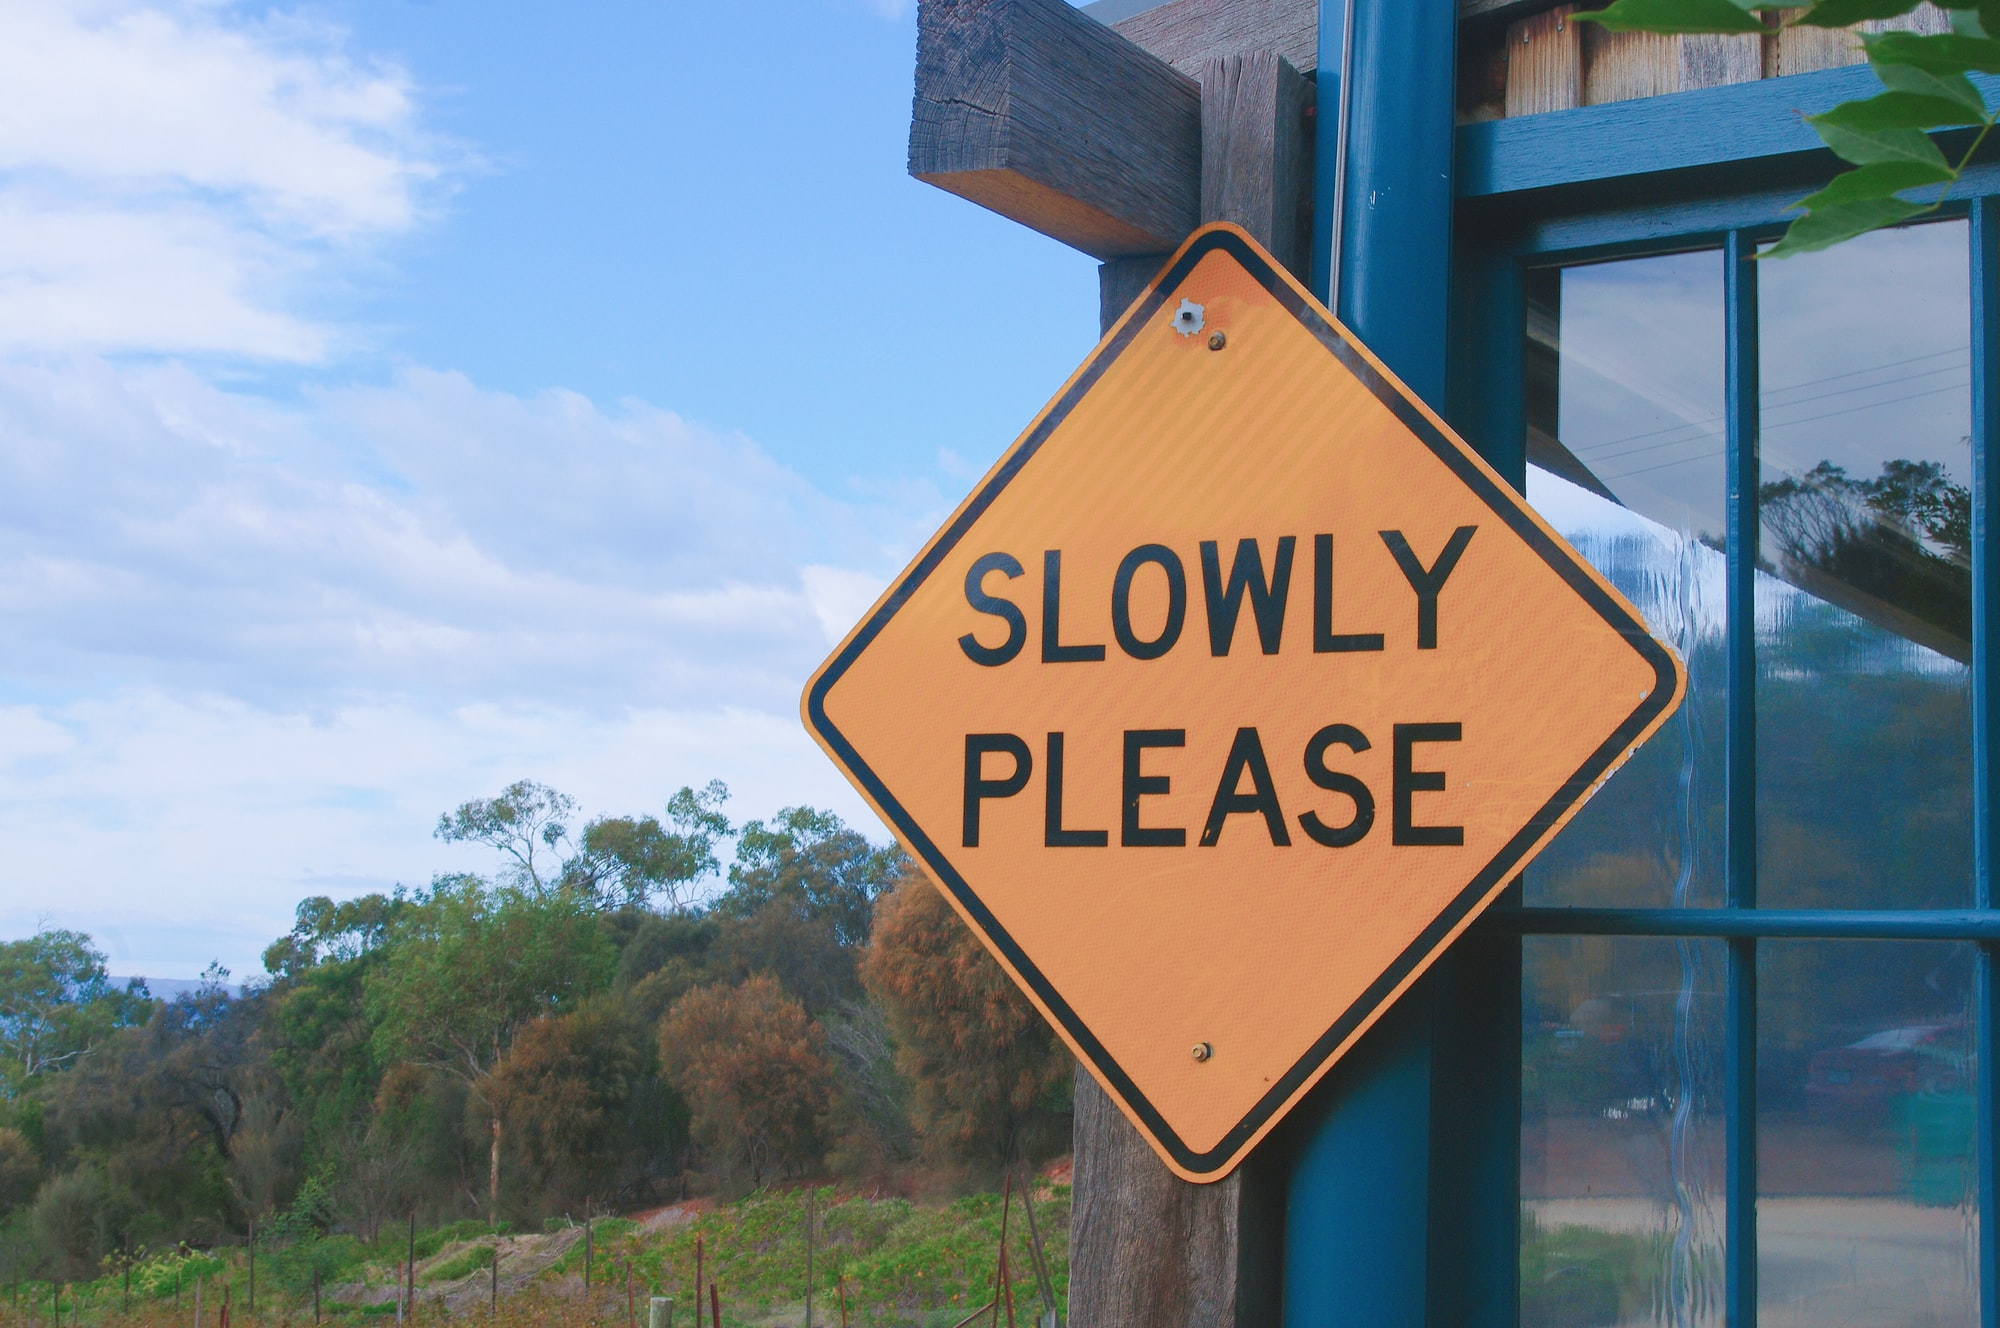 Road signs are important for all drivers not just truck drivers